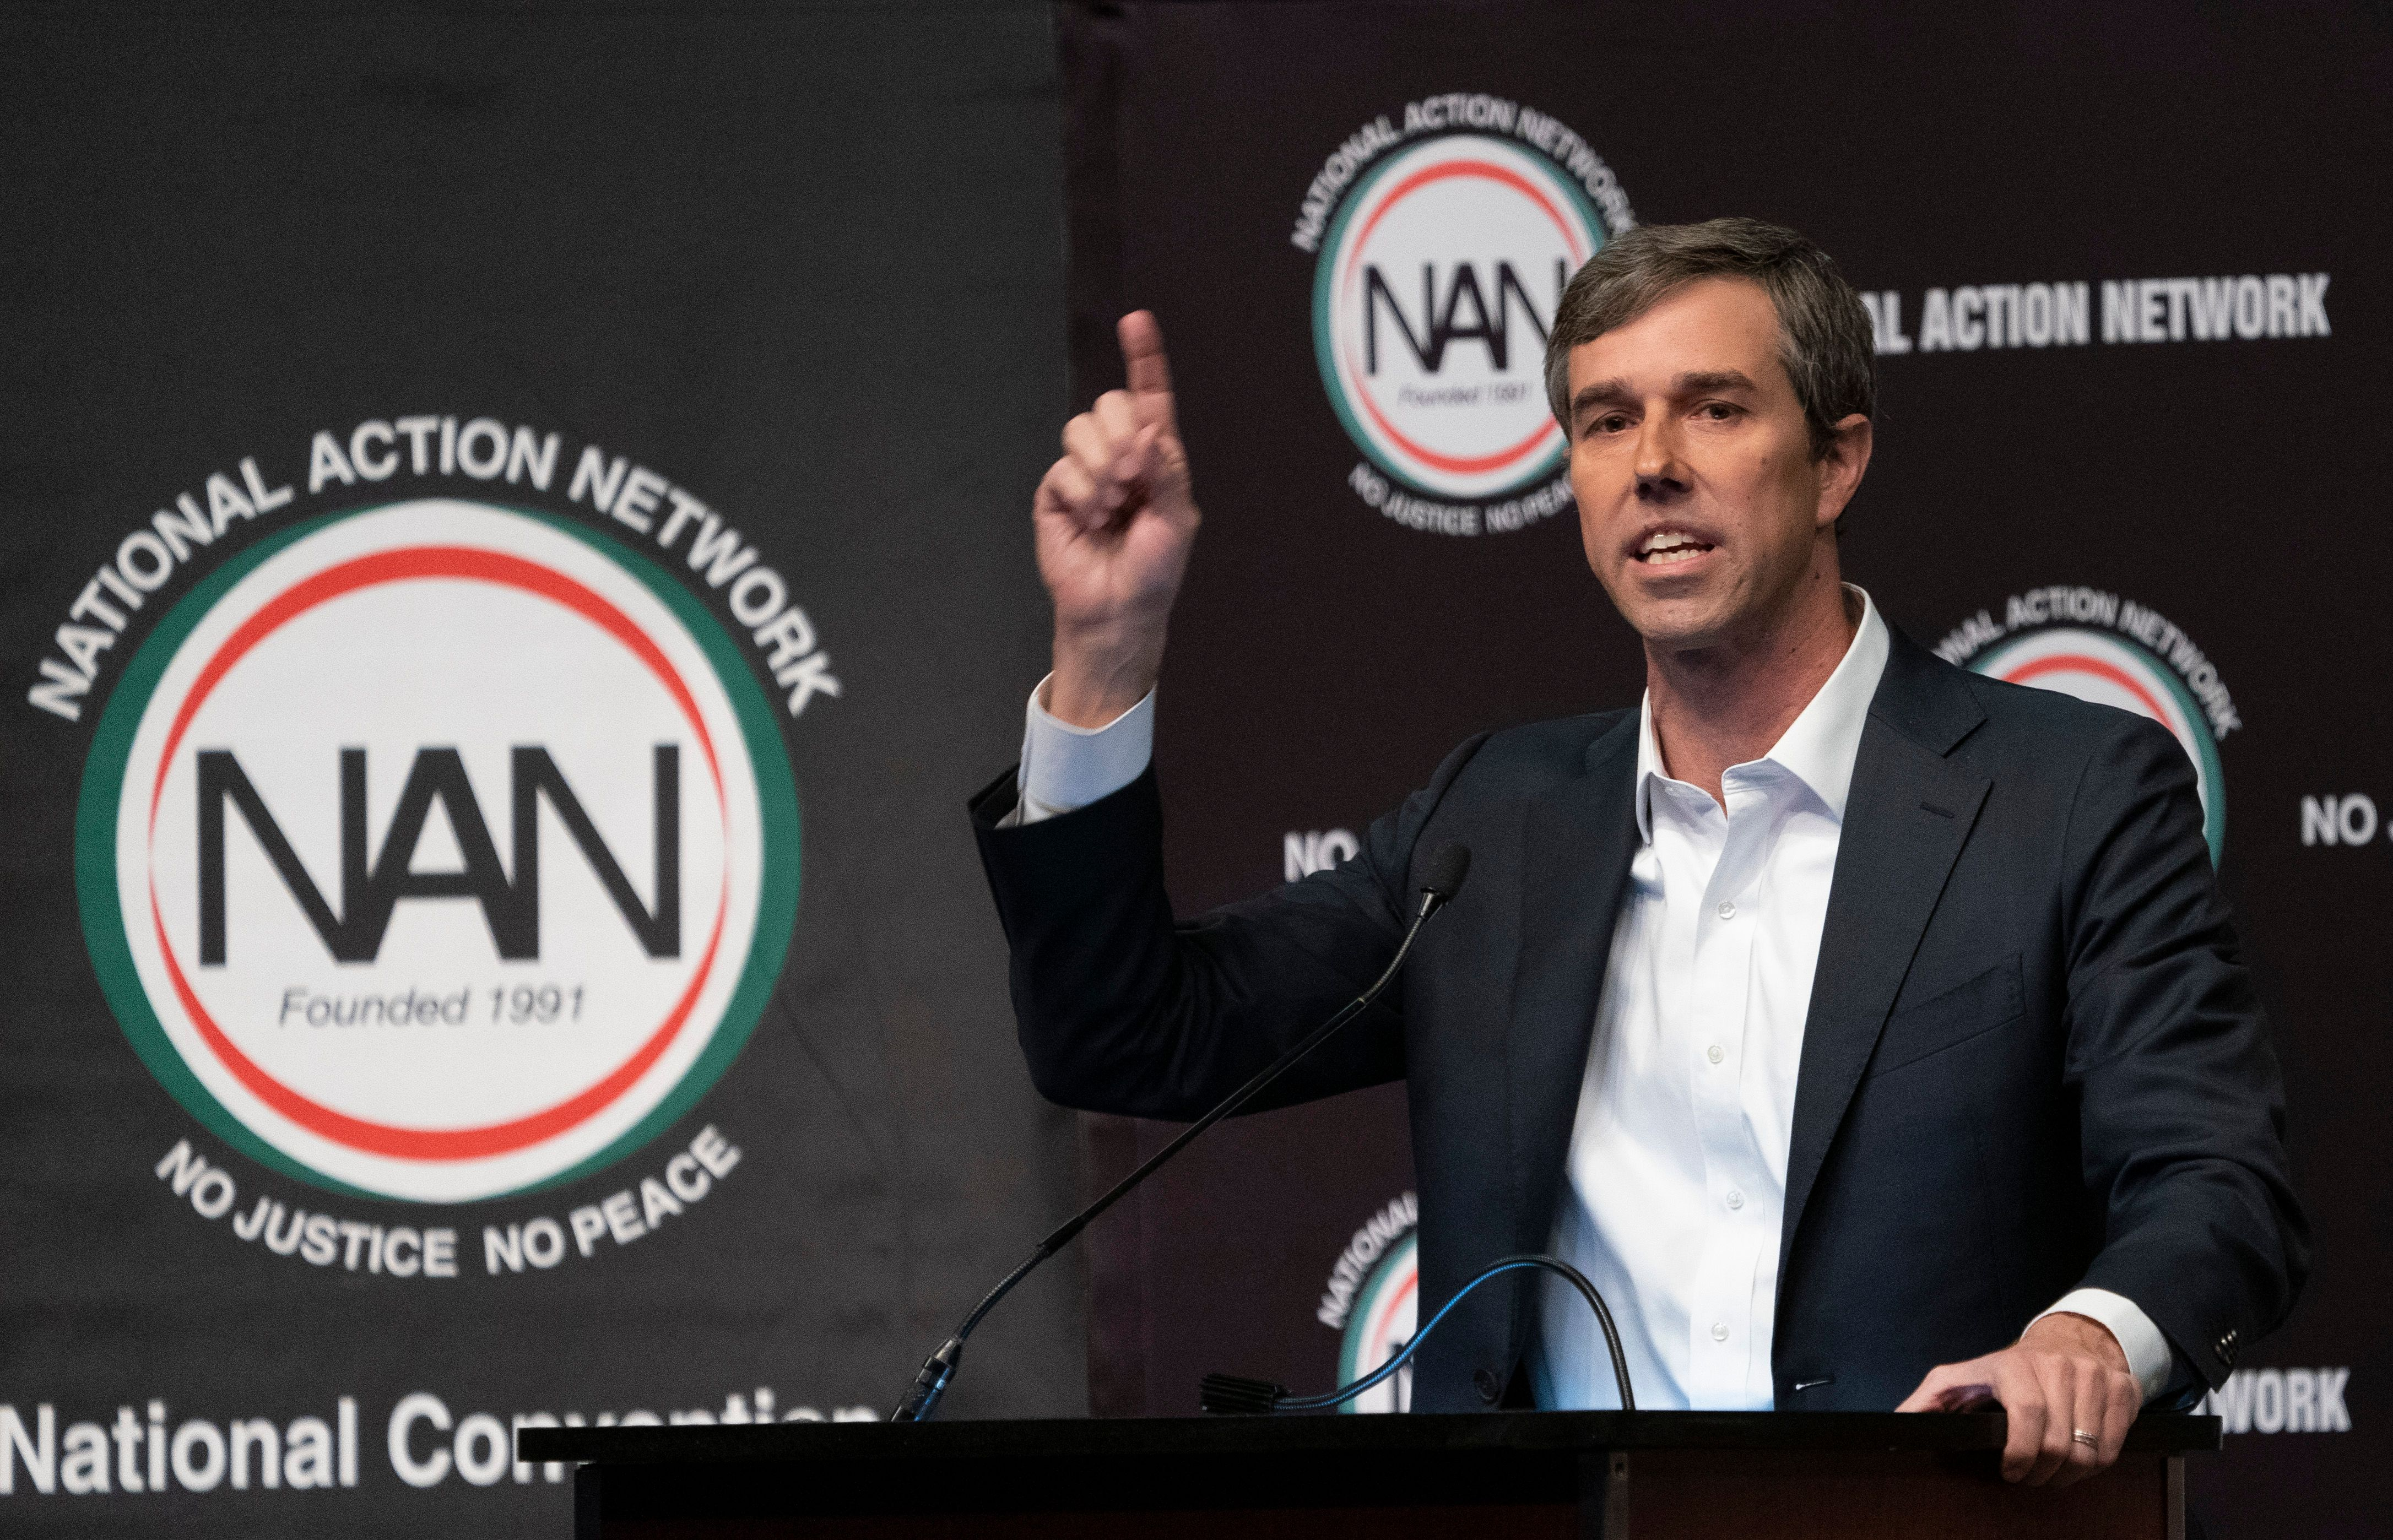 Presidential candidate Beto O'Rourke speaks during a gathering of the National Action Network. (Don Emmert/AFP/Getty Images)